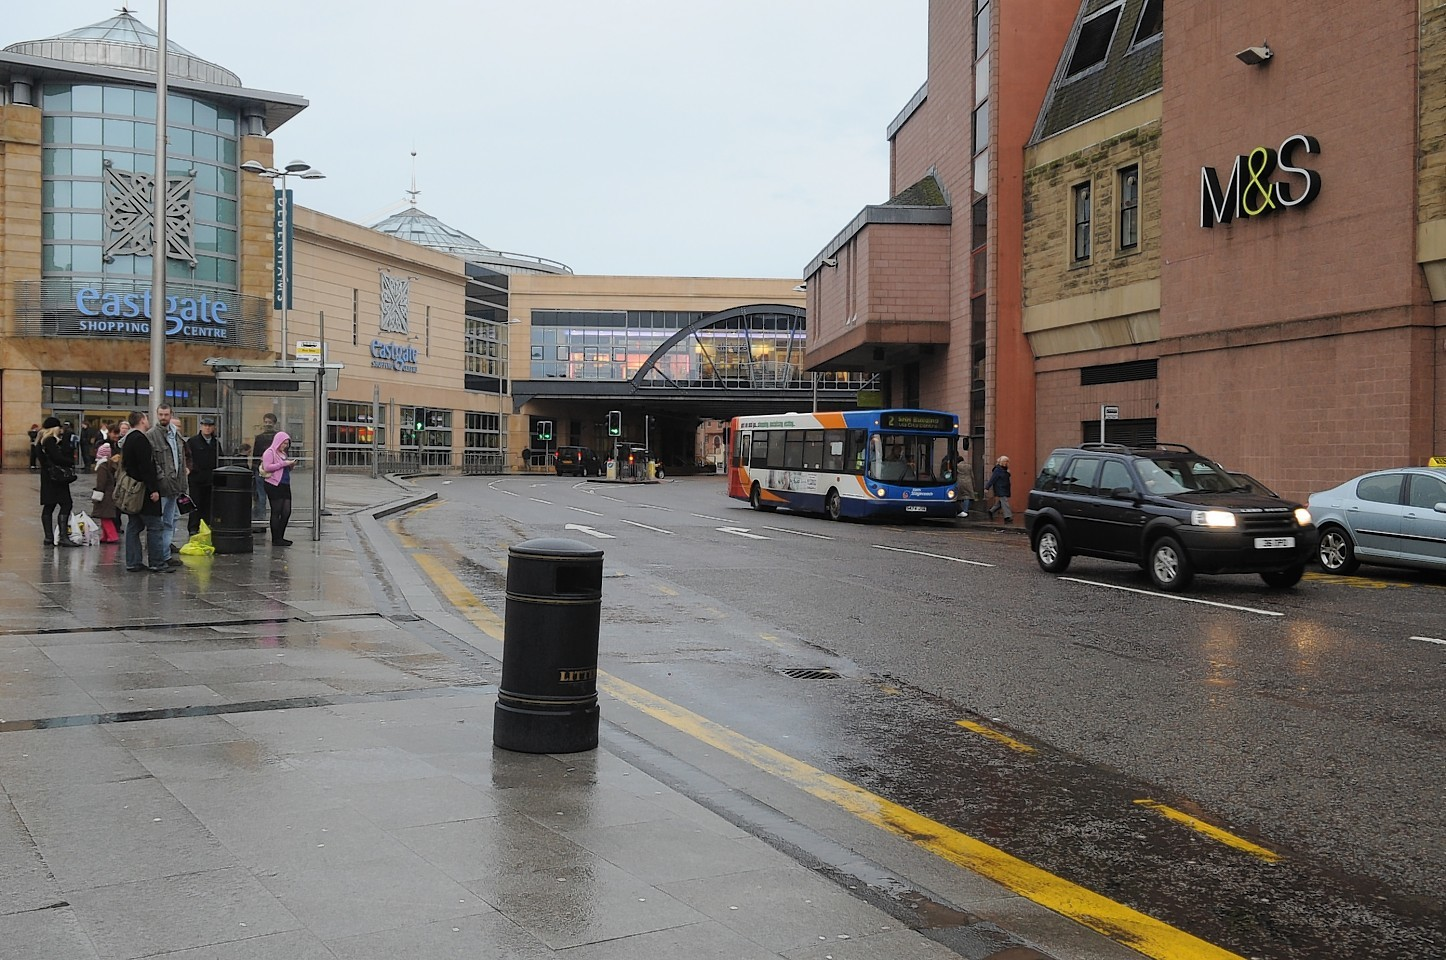 The junction at Falcon Square will be resurfaced this week